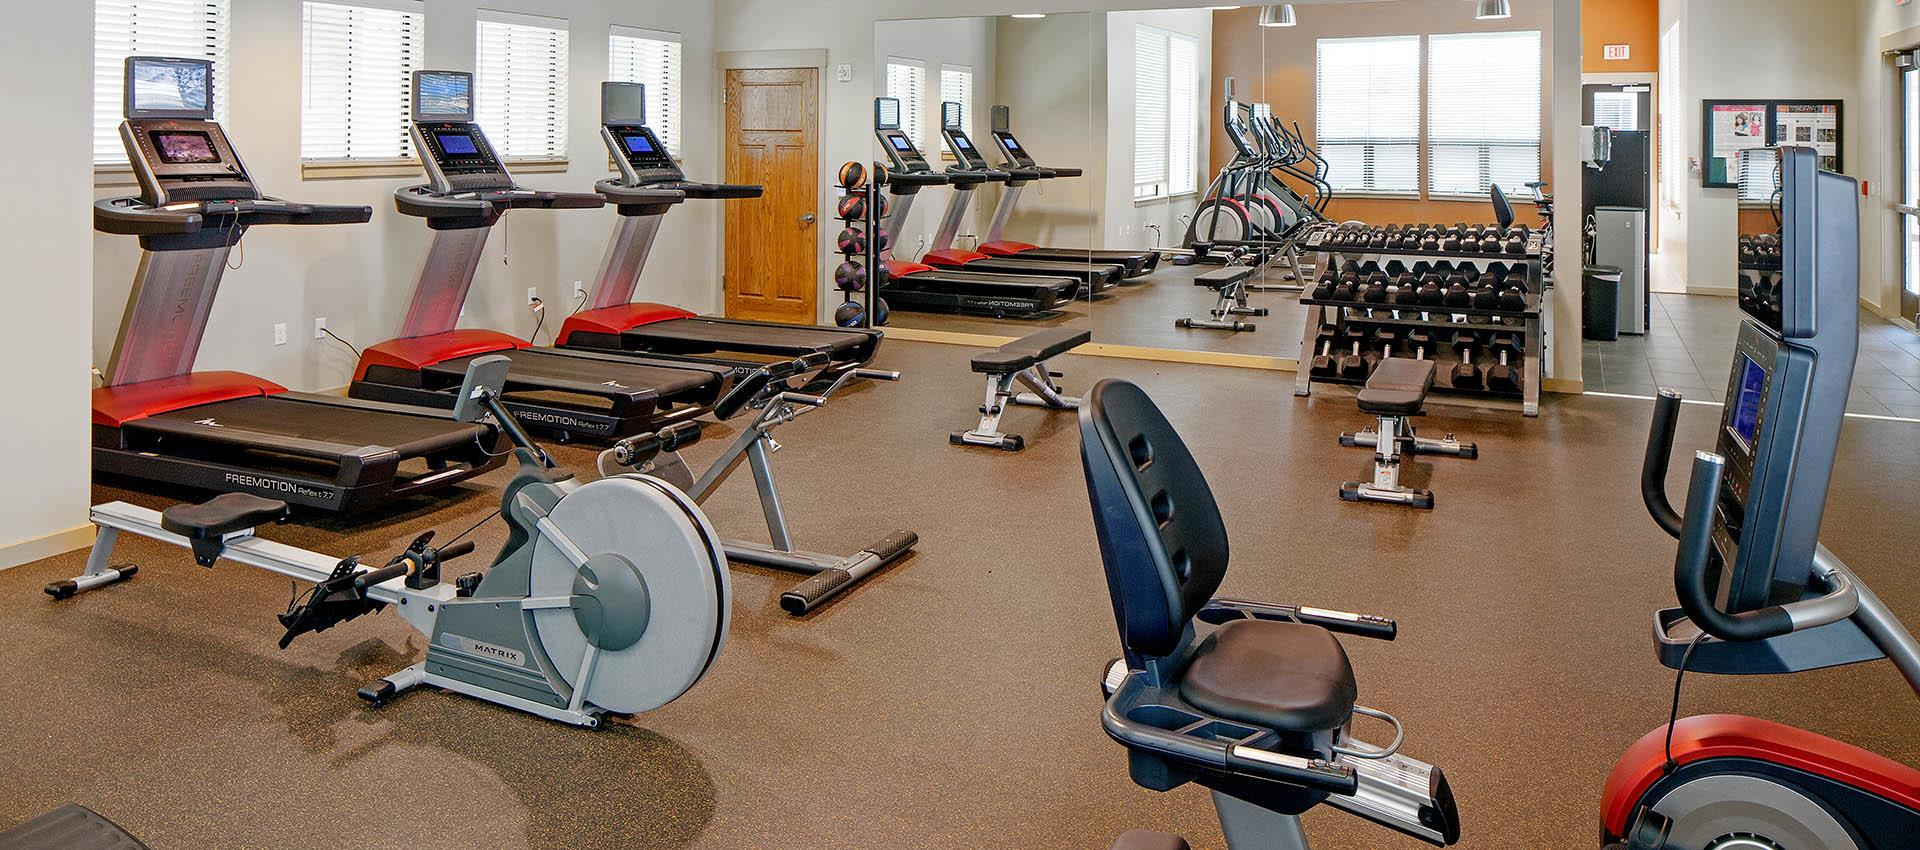 Well Equipped fitness center at Eddyline at Bridgeport in Portland, Oregon